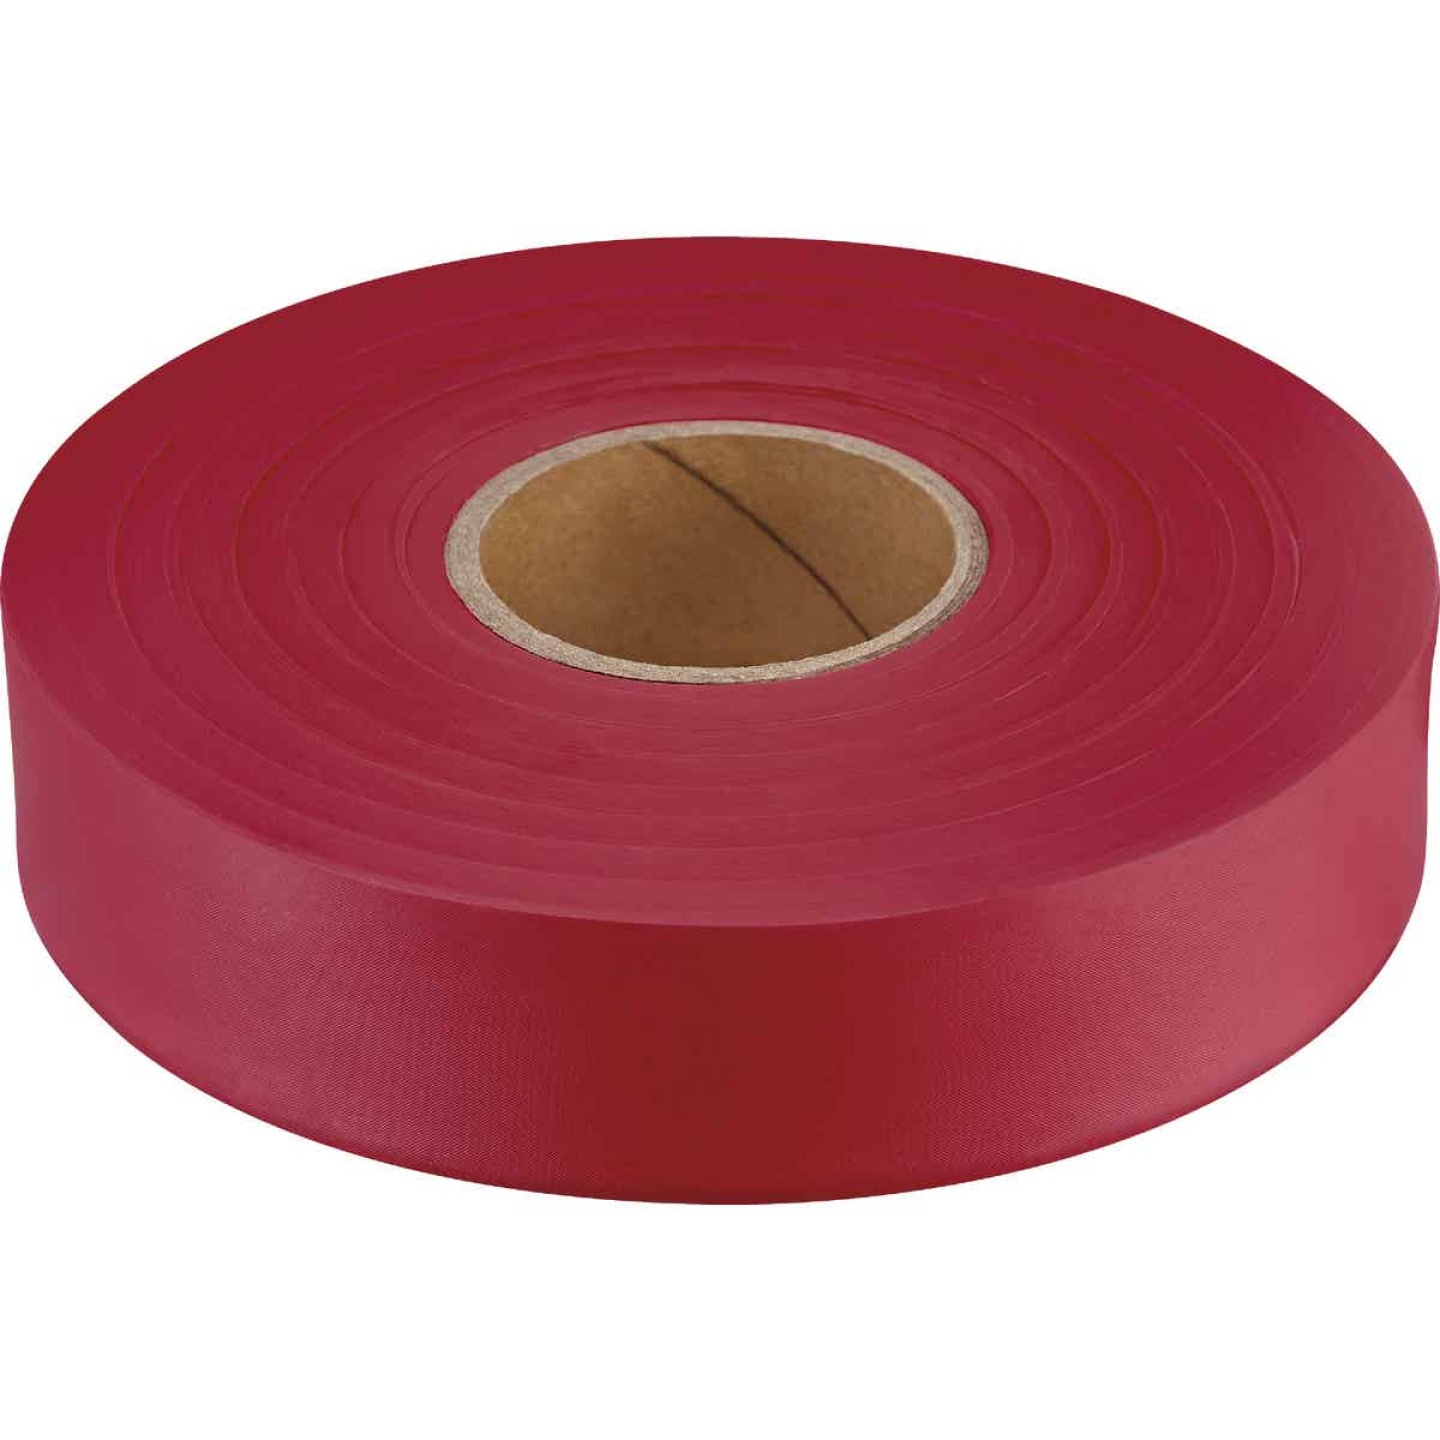 Empire 600 Ft. x 1 In. Red Flagging Tape Image 1